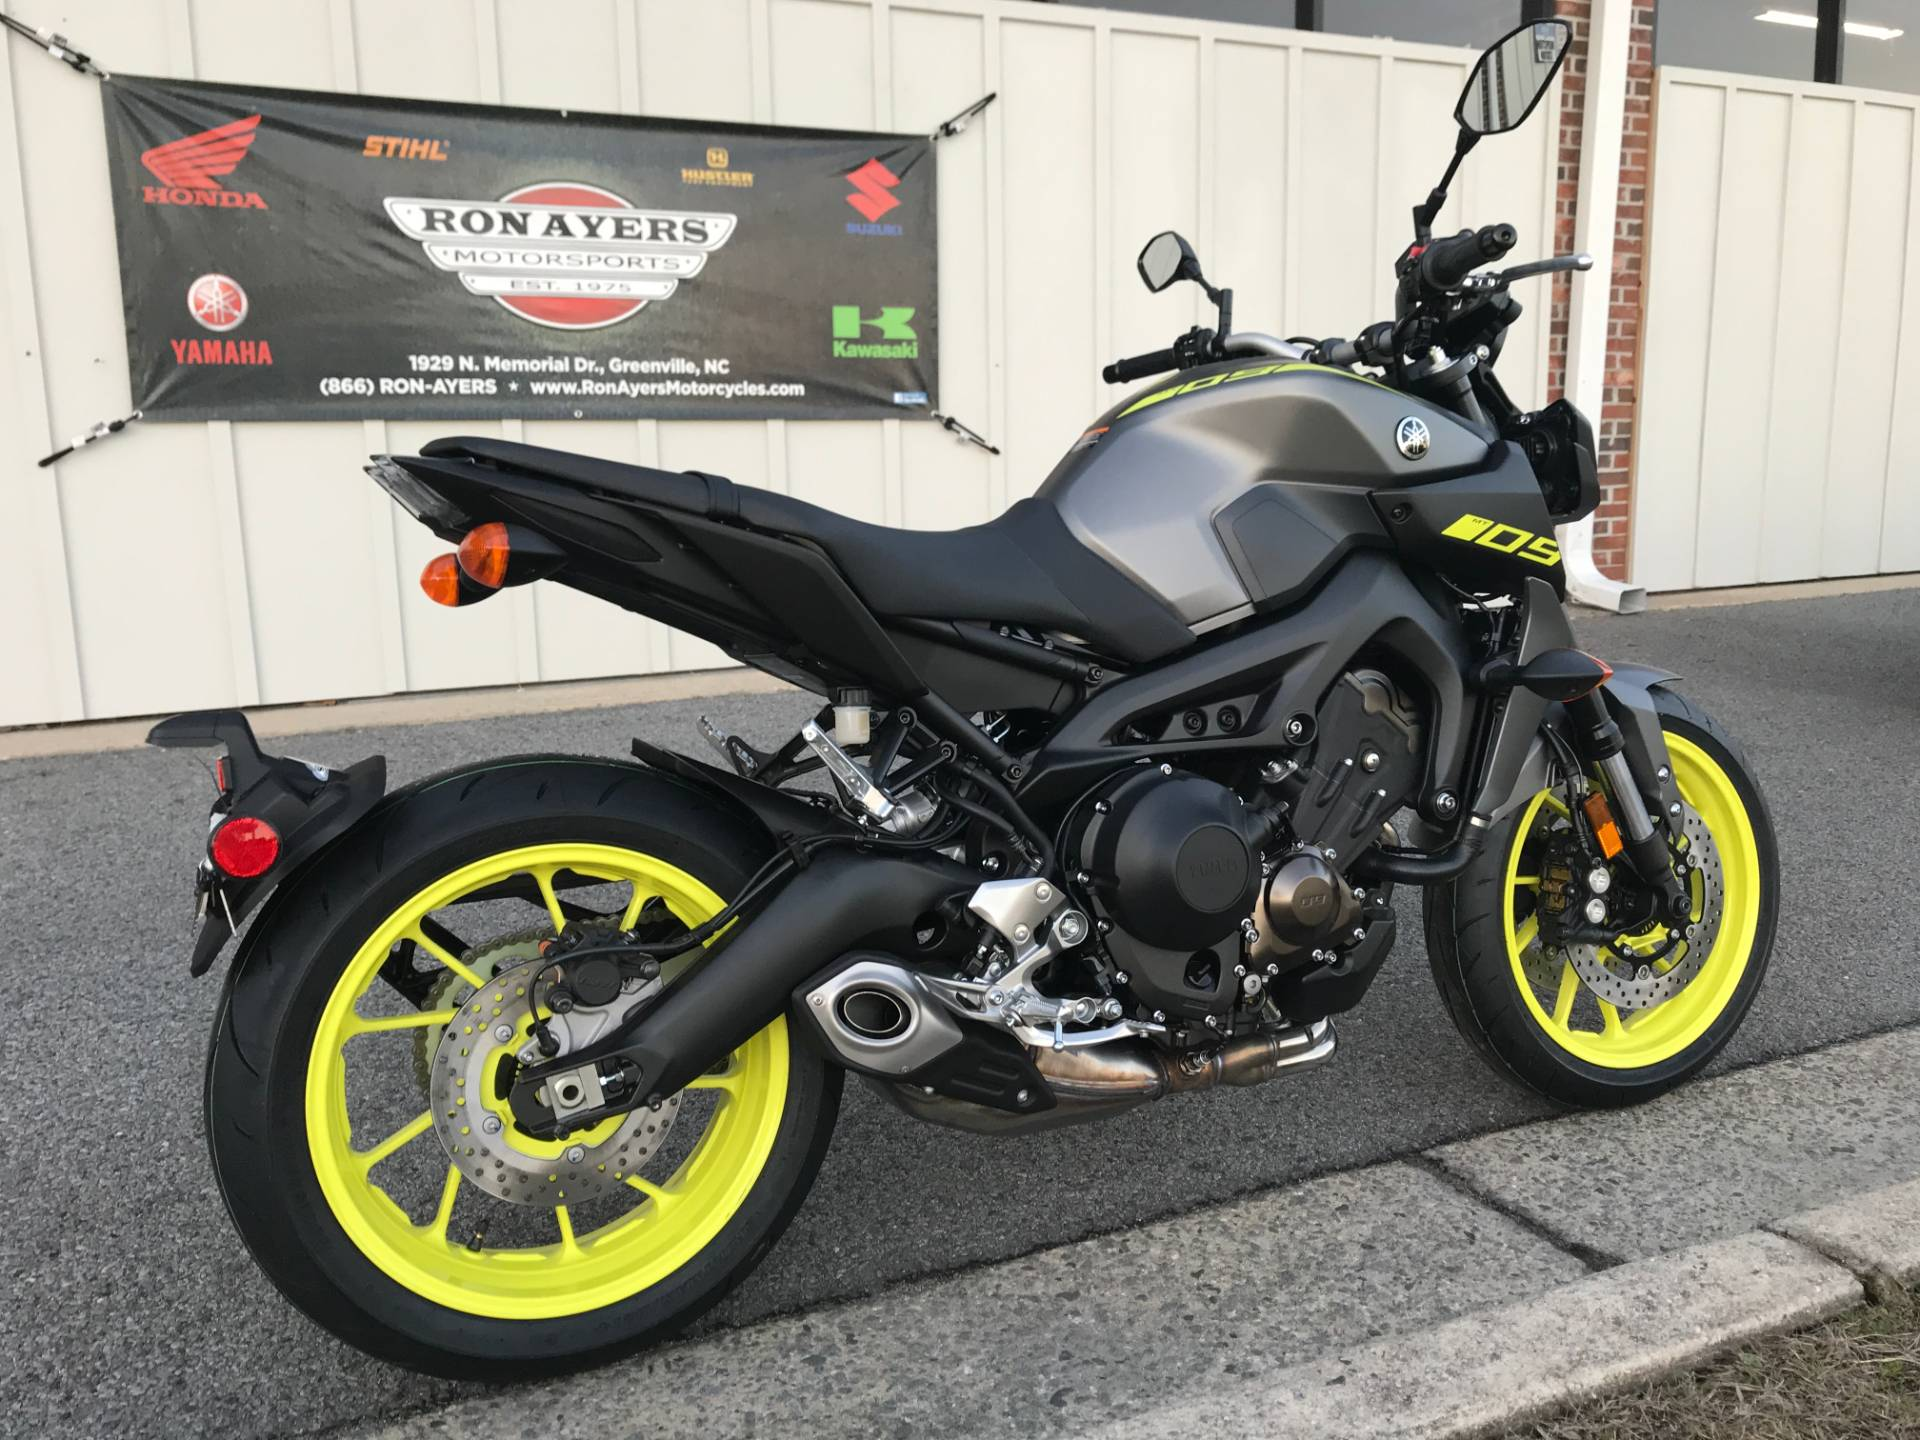 new 2018 yamaha mt 09 motorcycles in greenville nc. Black Bedroom Furniture Sets. Home Design Ideas